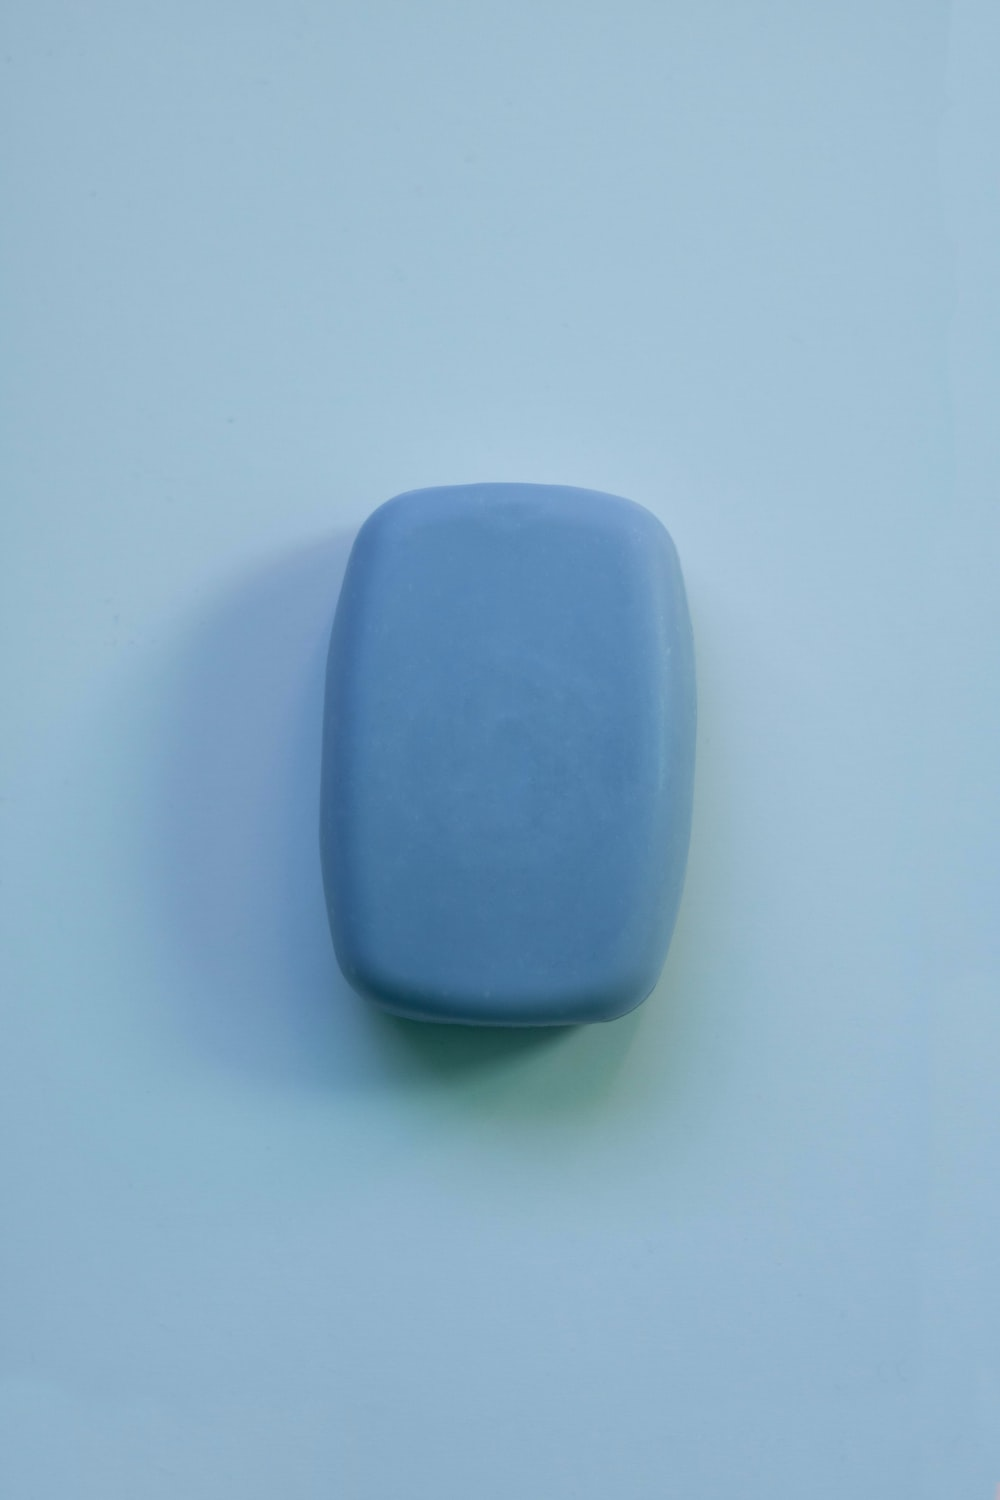 blue plastic container on white table